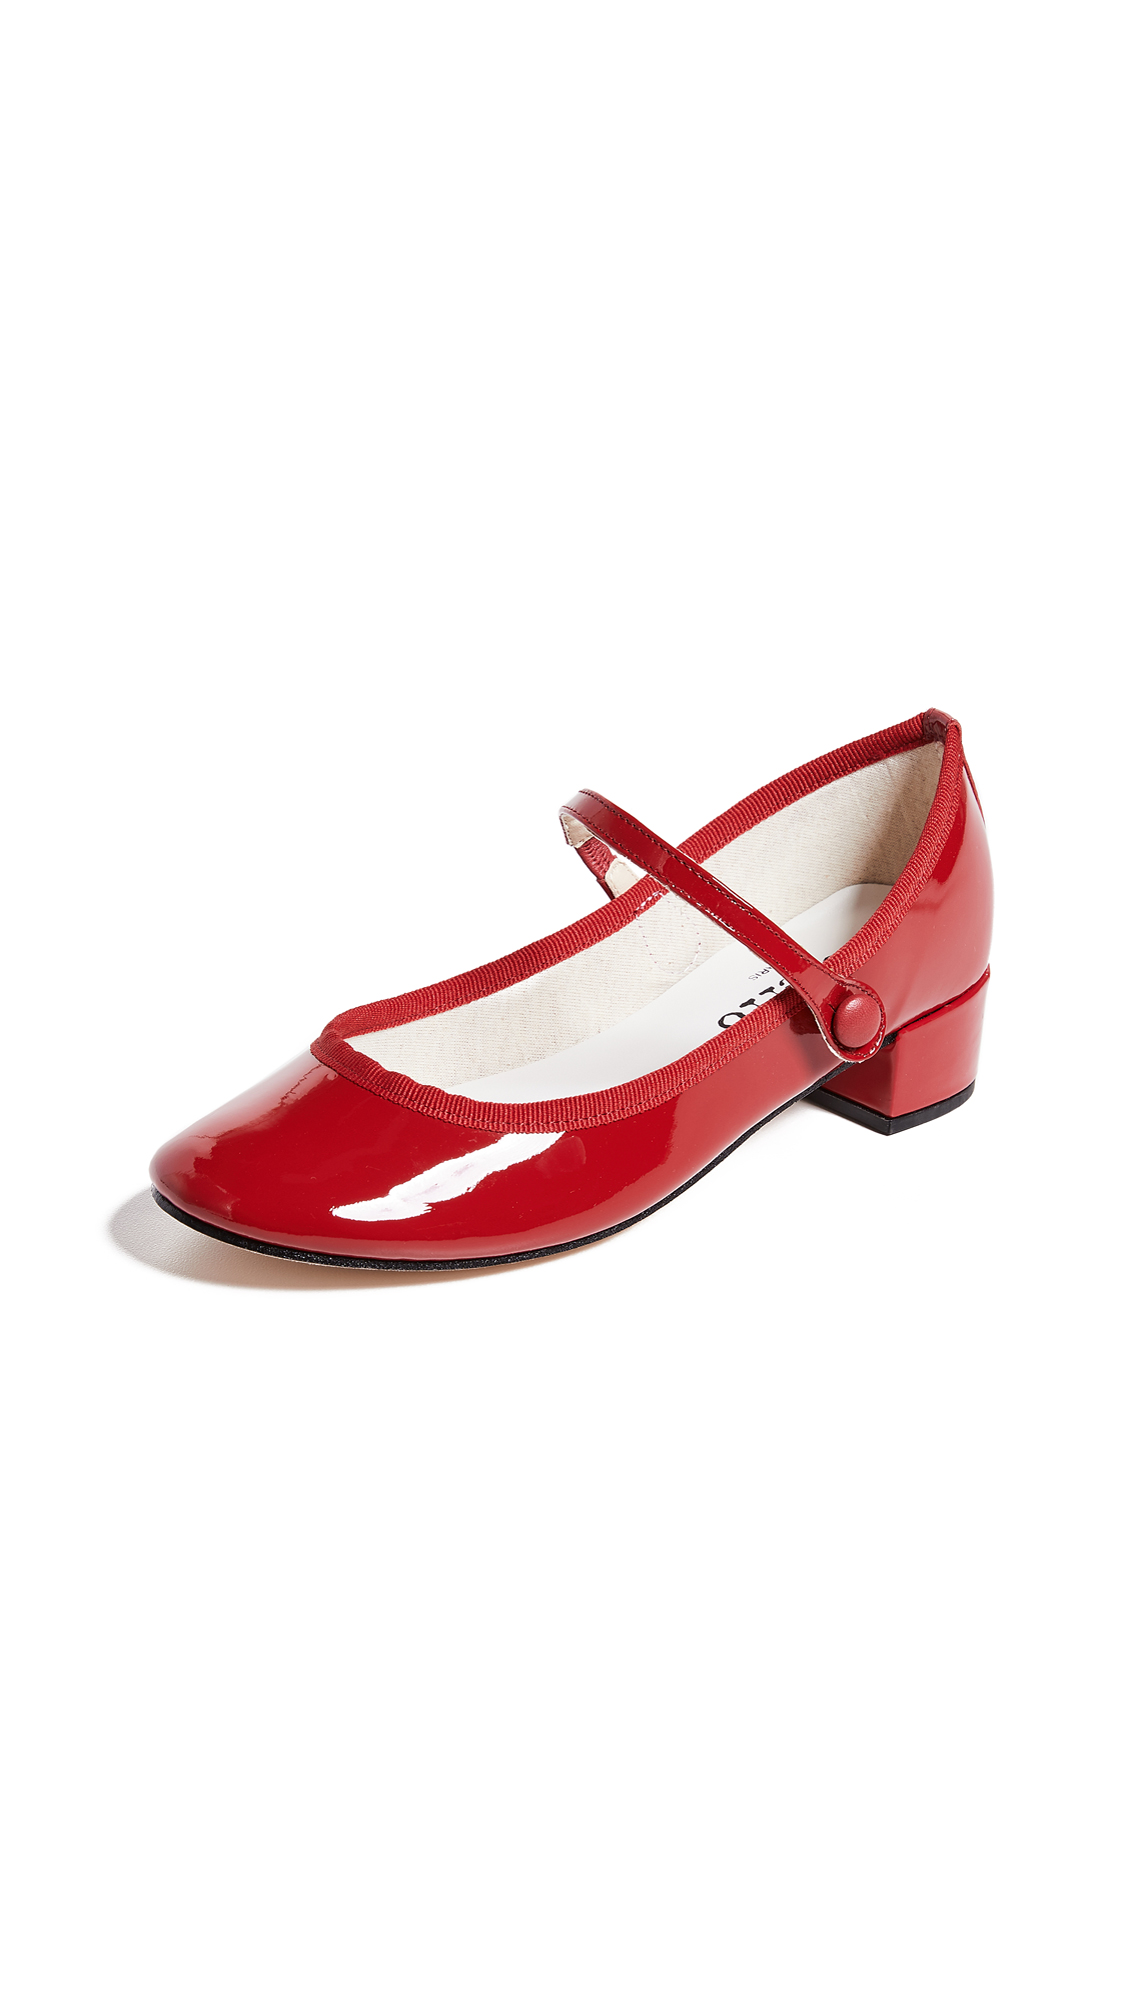 Repetto Rose Mary Jane Pumps - Flamme